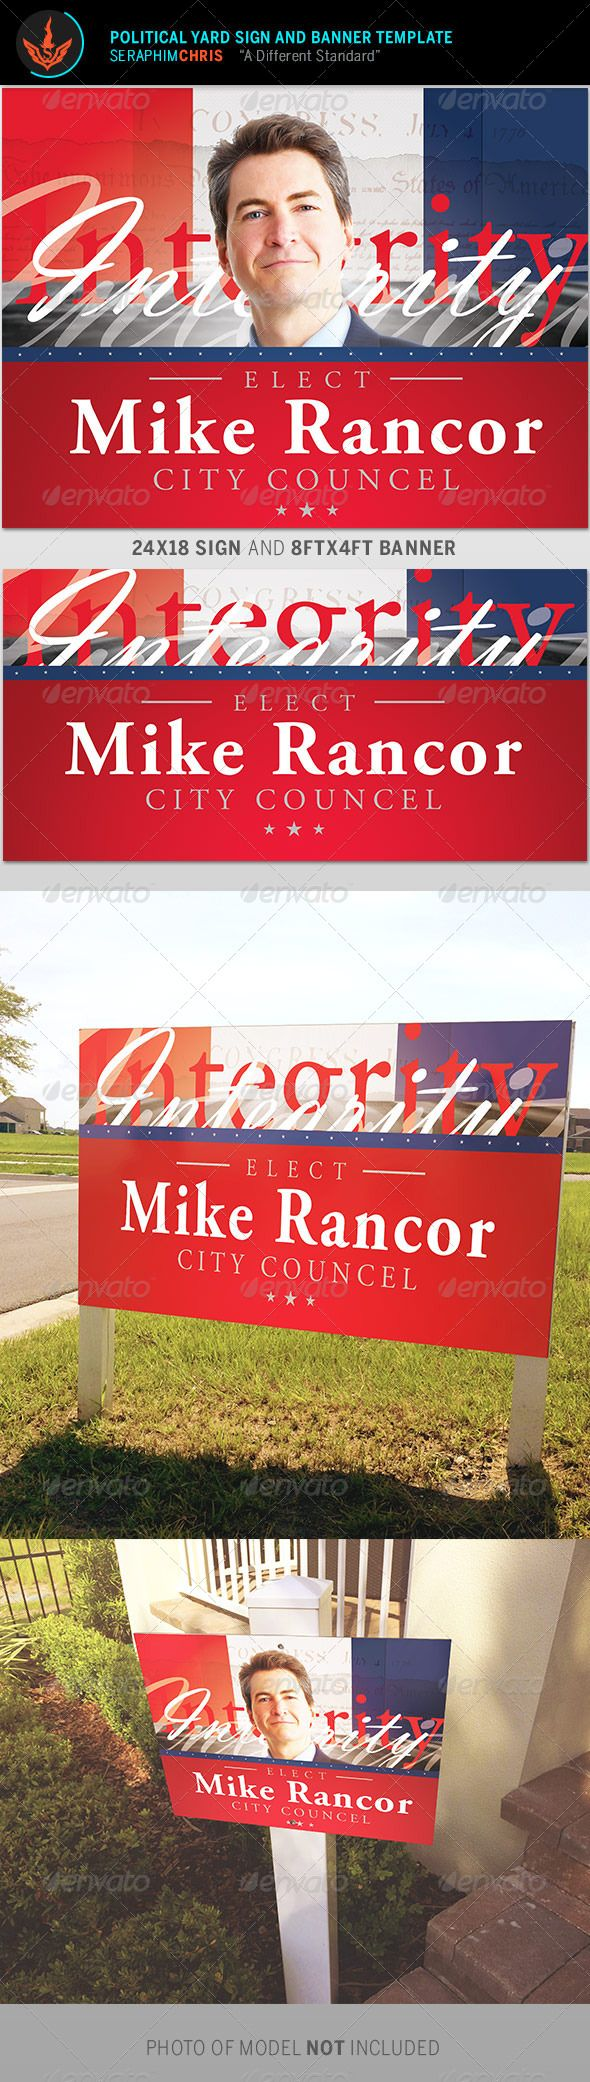 Political Yard Sign and Banner Template - Signage Print Templates